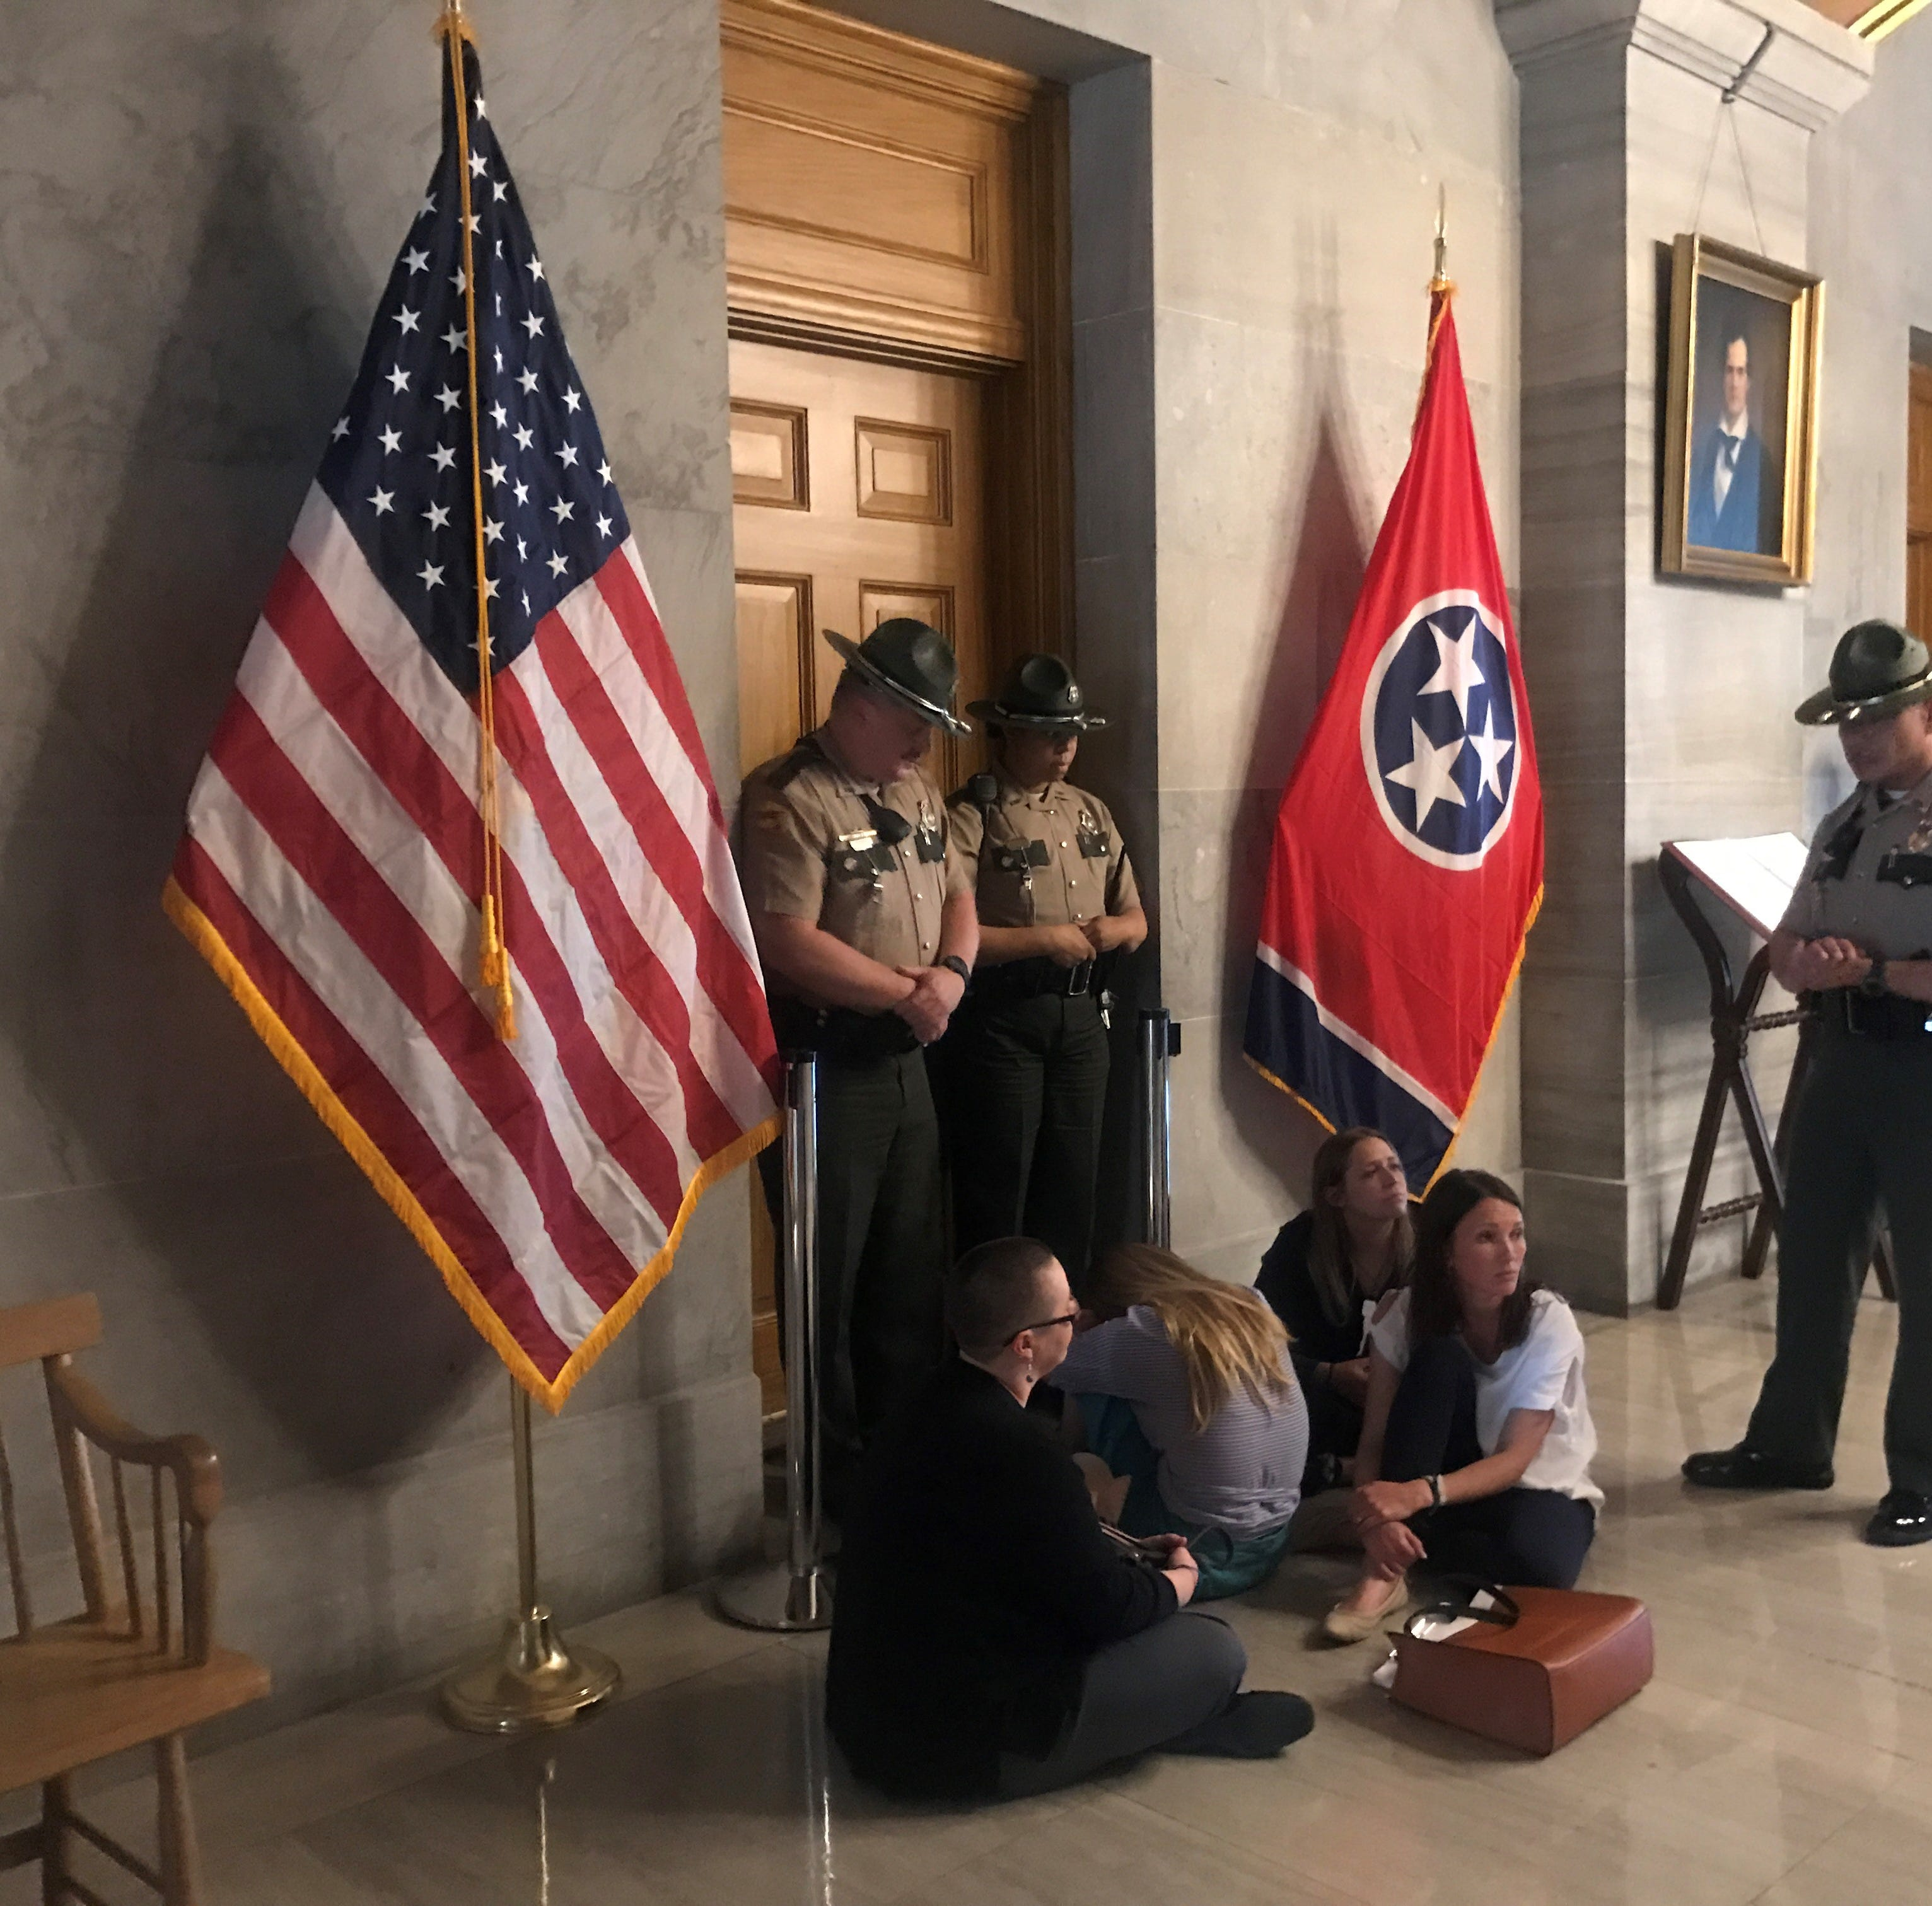 Troopers kick out, threaten to arrest reporters during Rep. David Byrd protest at governor's office